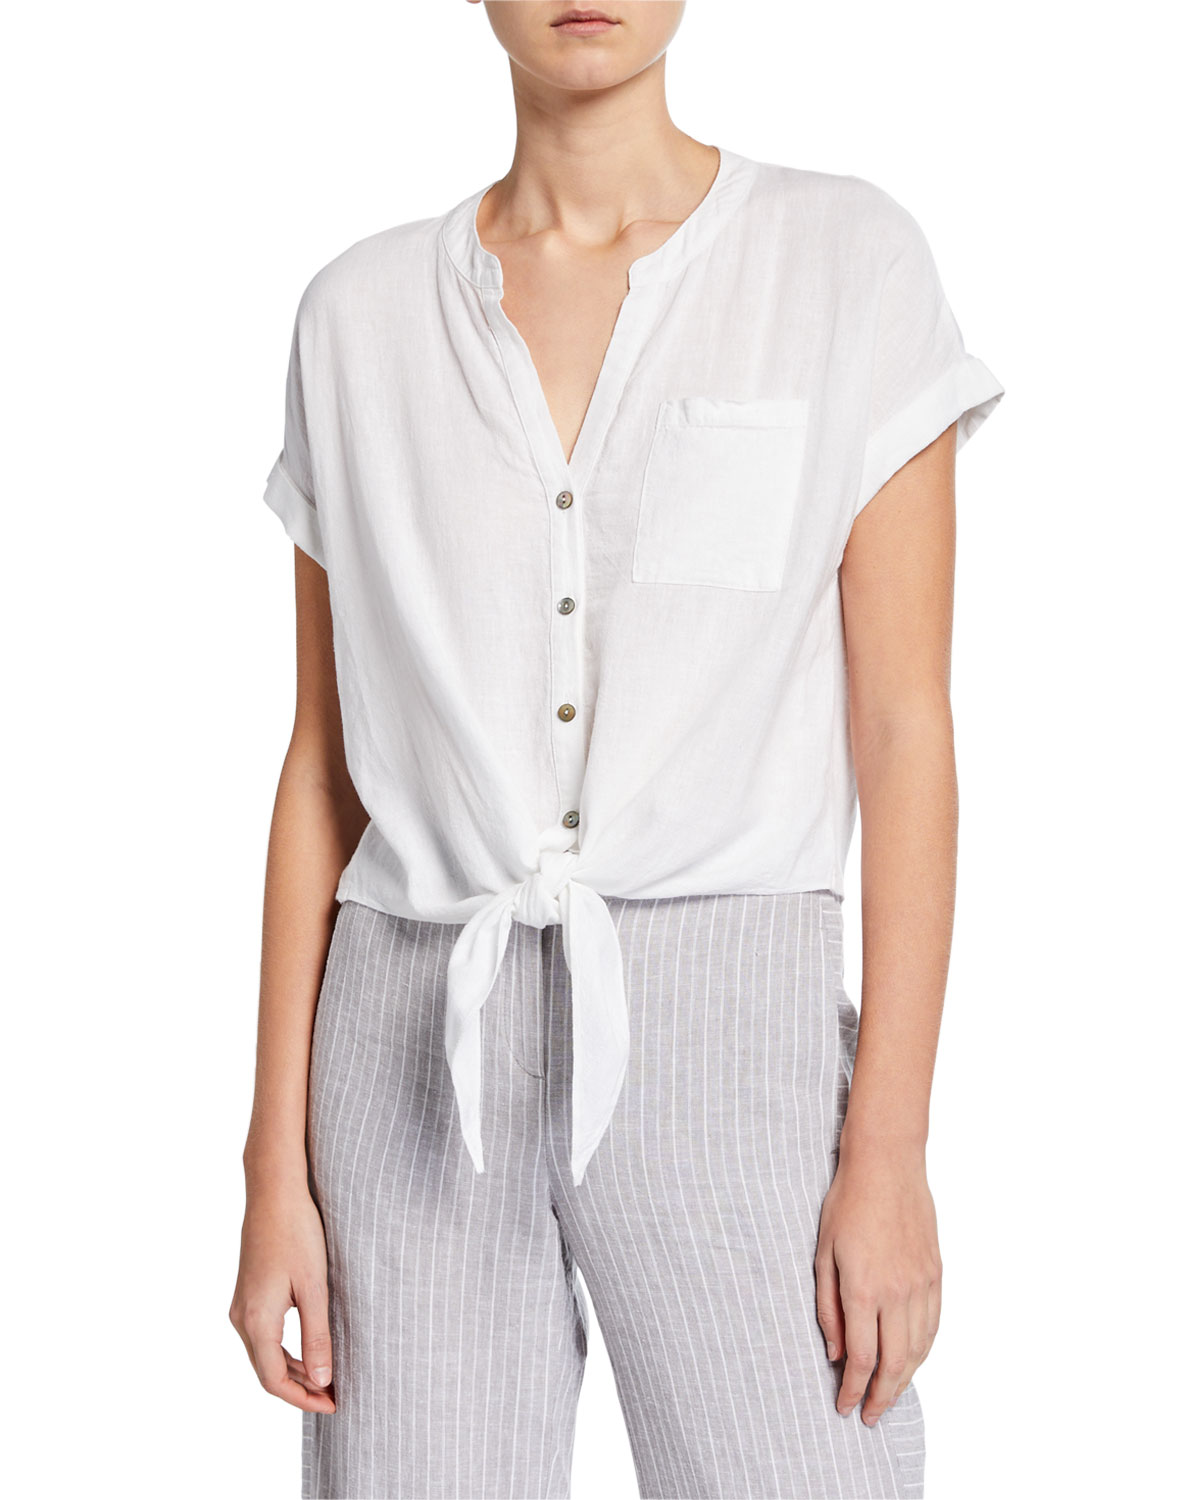 Nic+zoe Shorts PETITE TIE IT ON BUTTON-FRONT SHORT-SLEEVE TOP